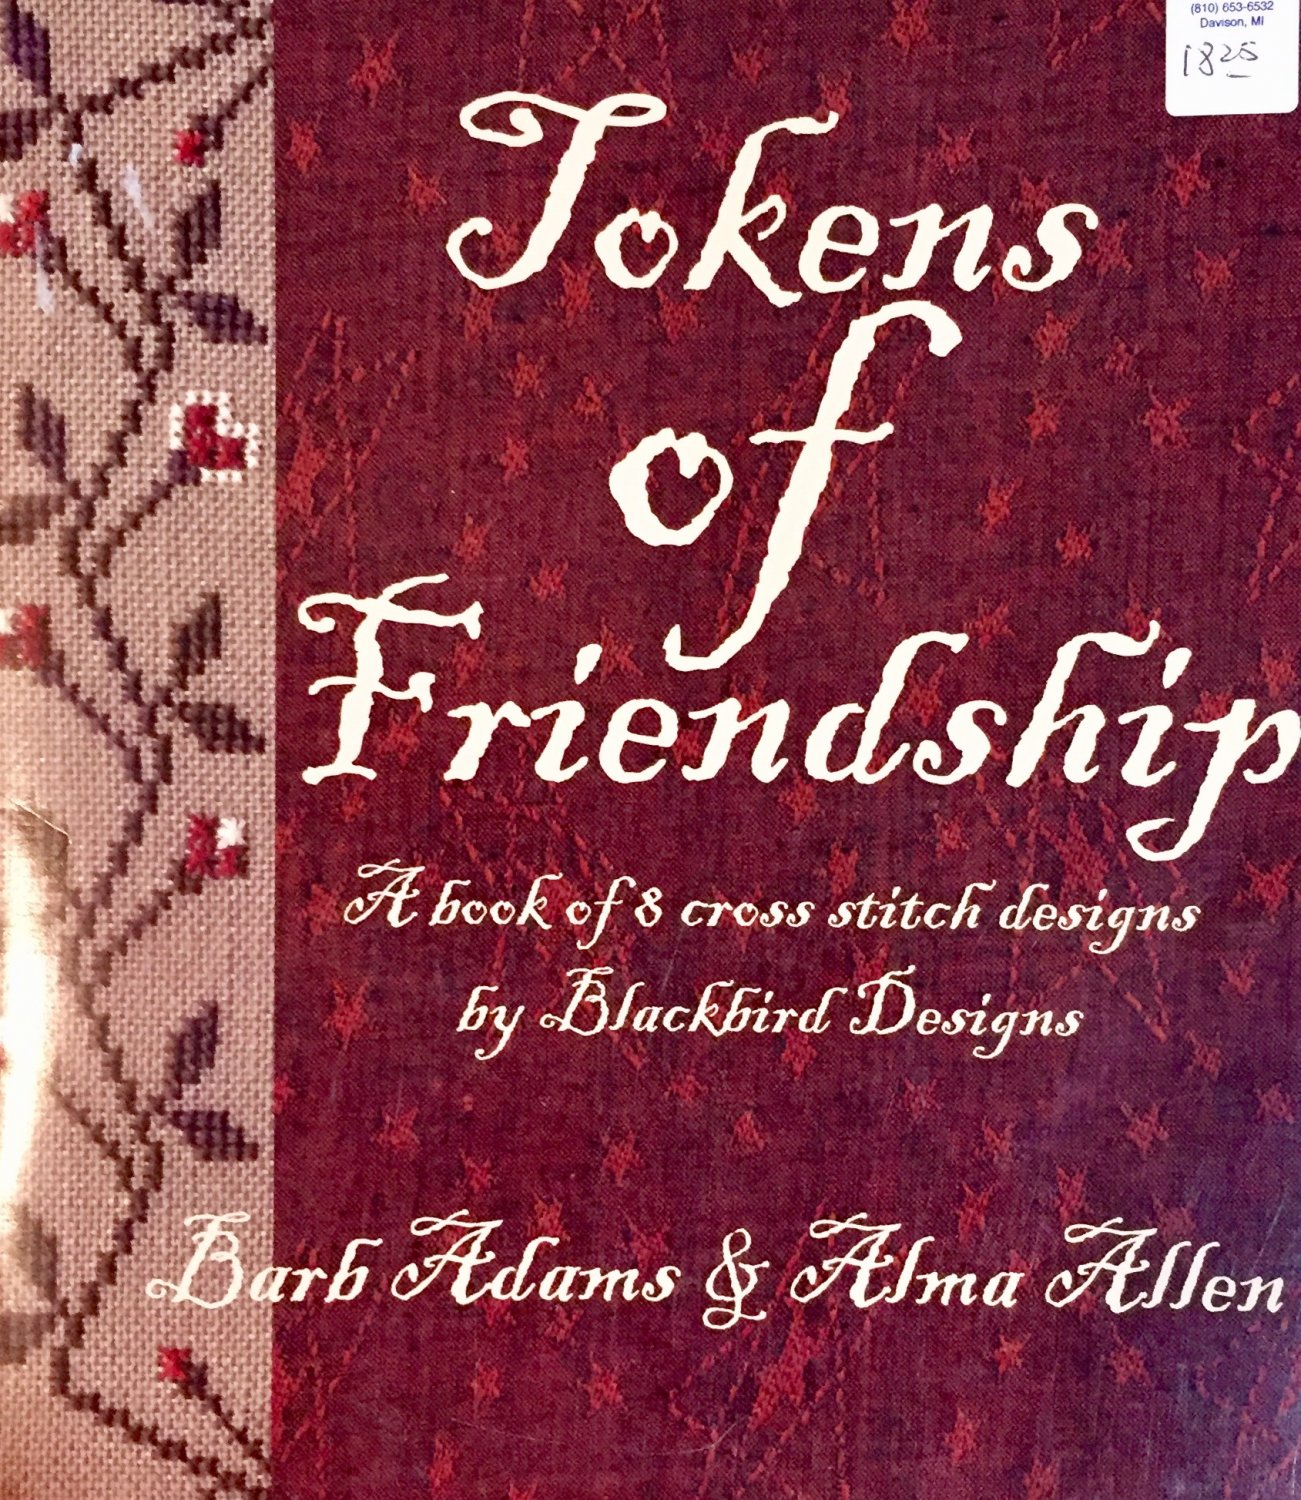 Tokens of Friendship Blackbird Designs Cross Stitch Pattern Booklet 8 designs Barb Adams Alma Allen